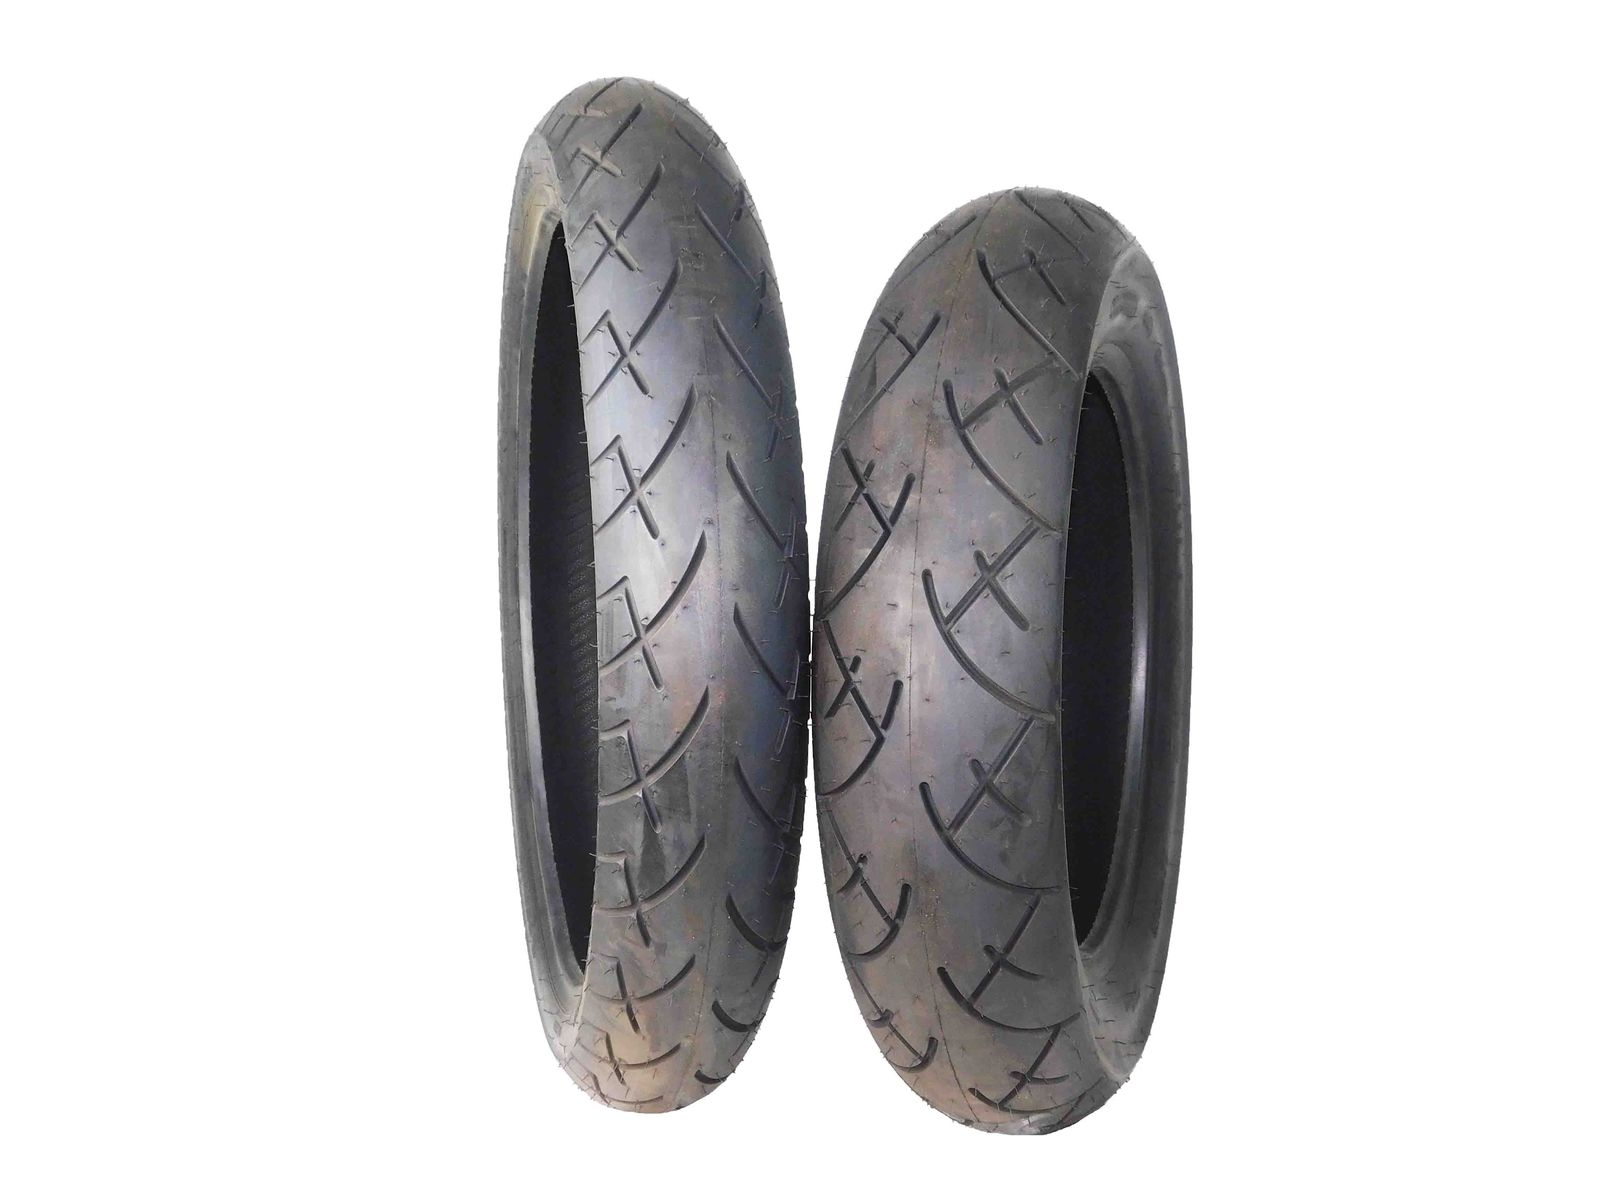 Full-Bore-120-70-21-Front-140-90-15-Rear-Set-Cruiser-Motorcycle-Tires-image-1